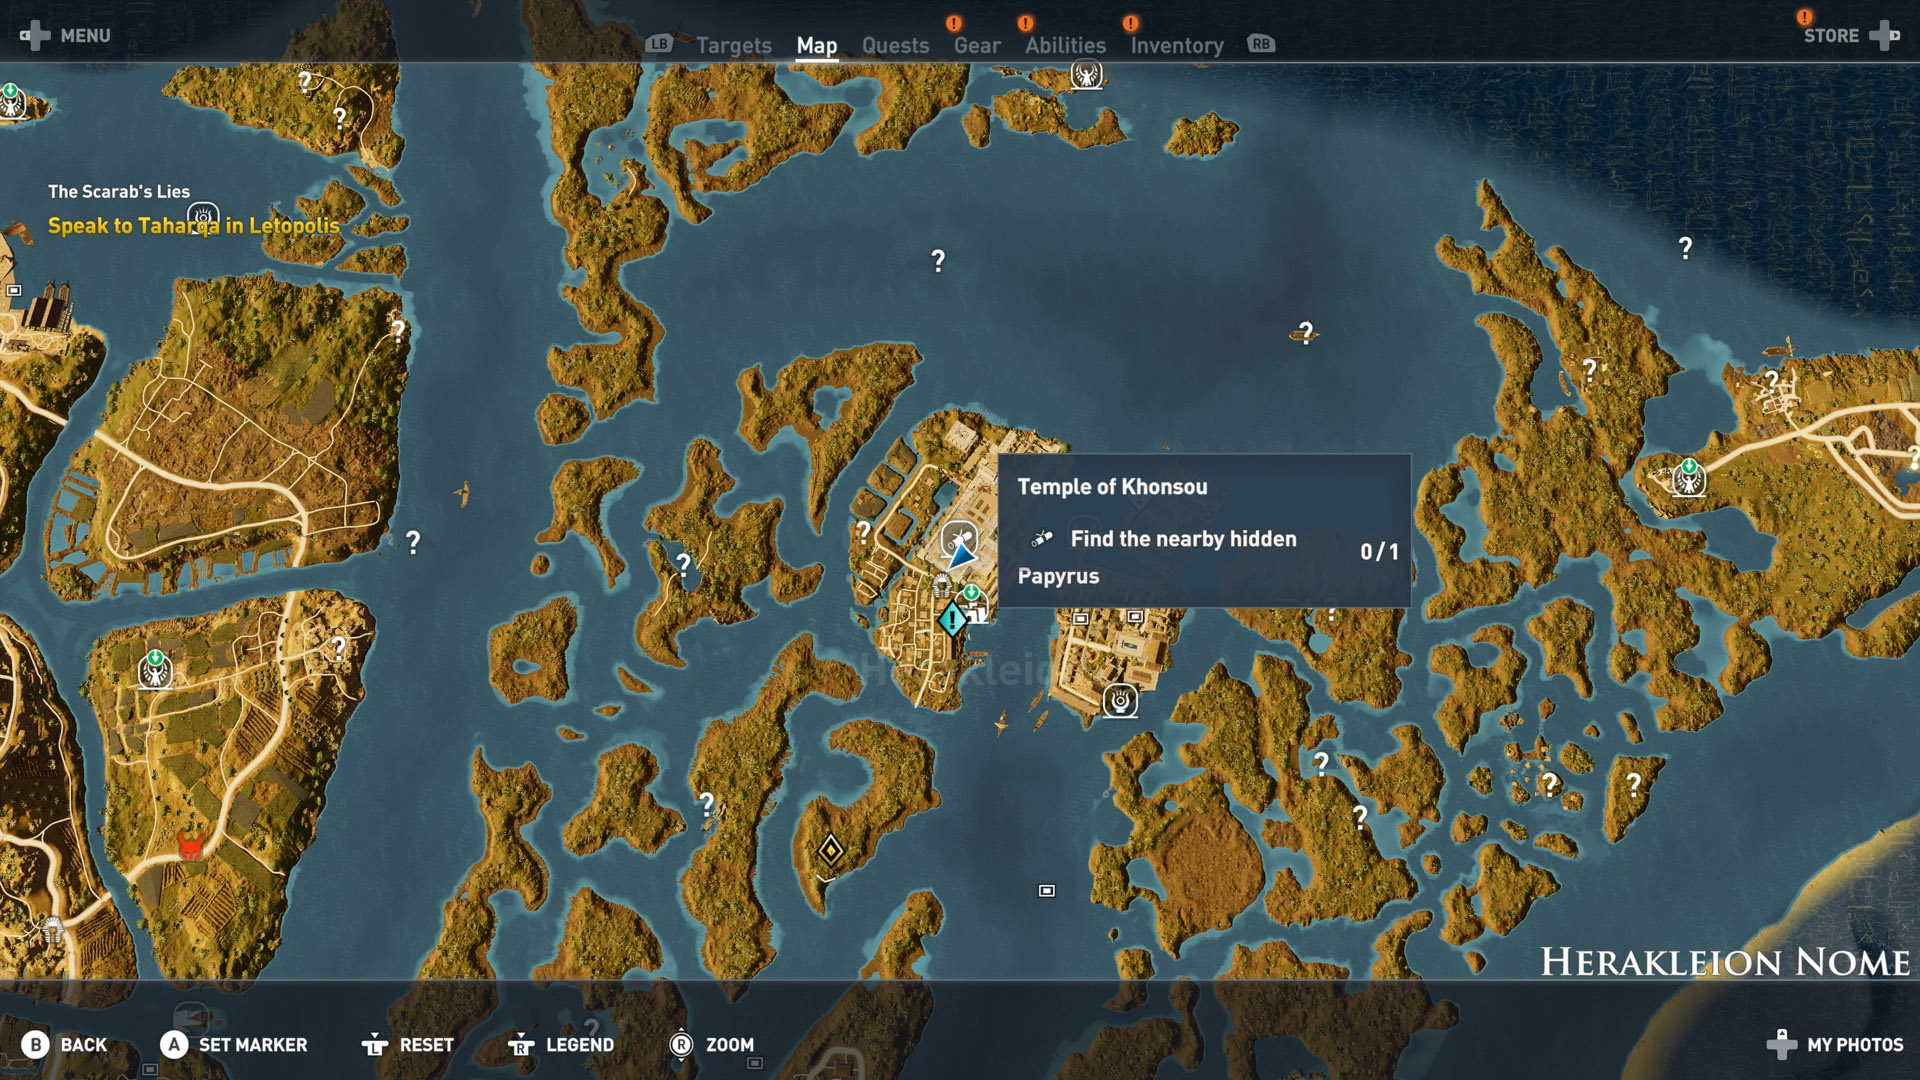 Assassins Creed Origins All Papyrus Locations Herakleion Nome Temple of Khonsou Map